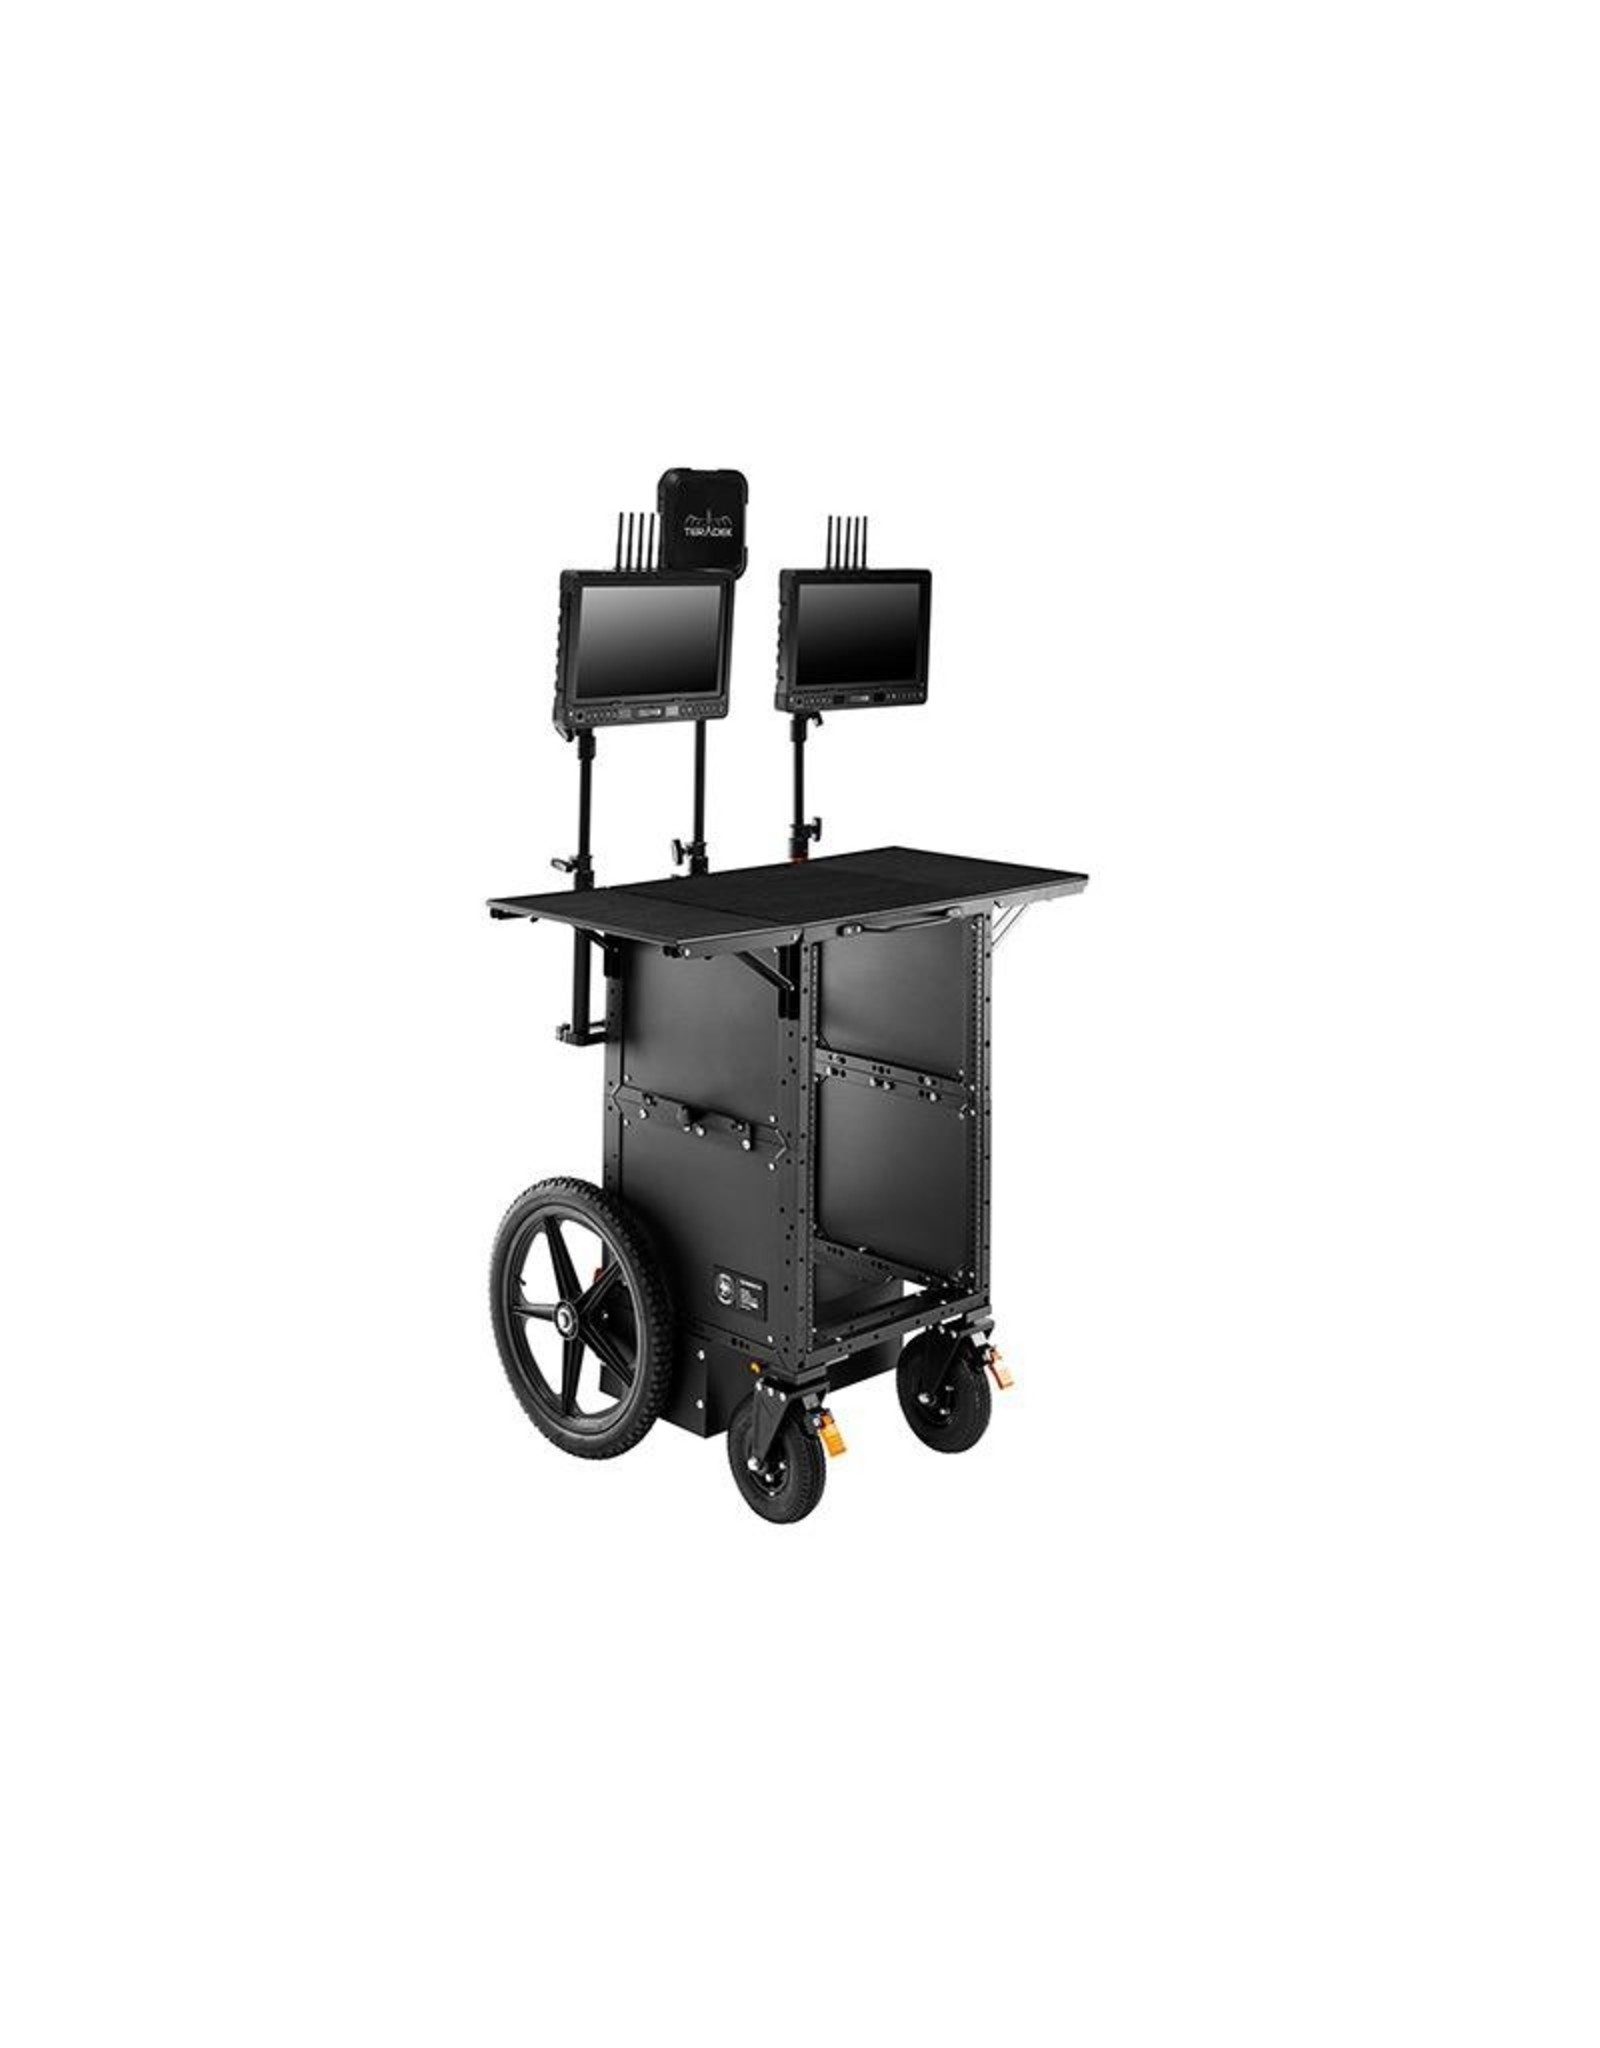 Inovativ Inovativ Deploy Gen IV with 2x Two-Stage Risers and 2 Pro Monitor Mounts